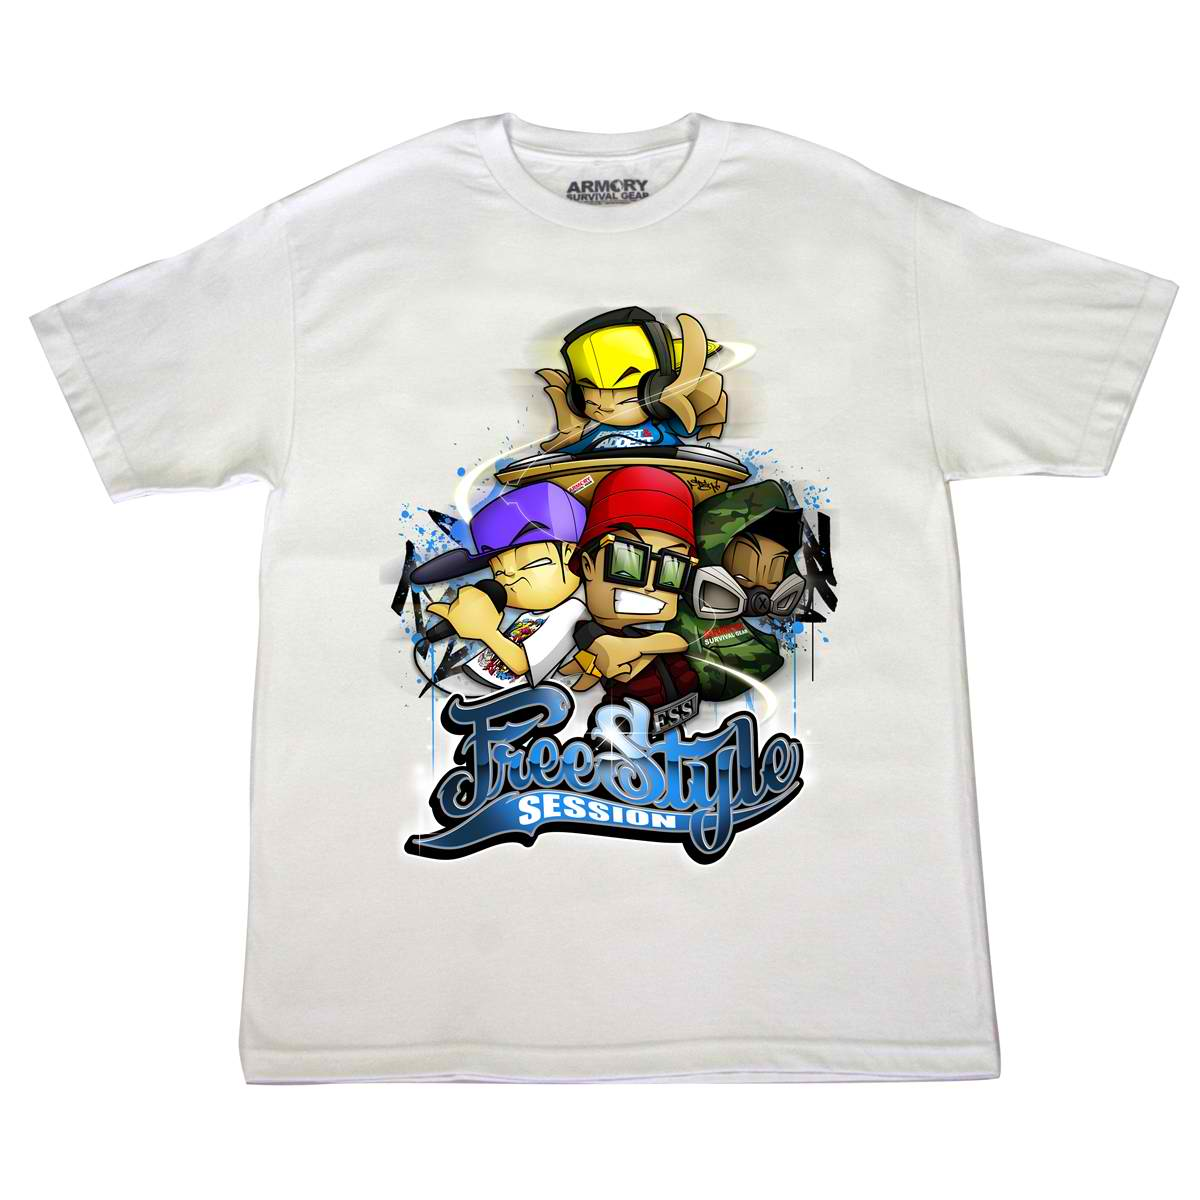 Freestyle Session 12 Men's T-Shirt White